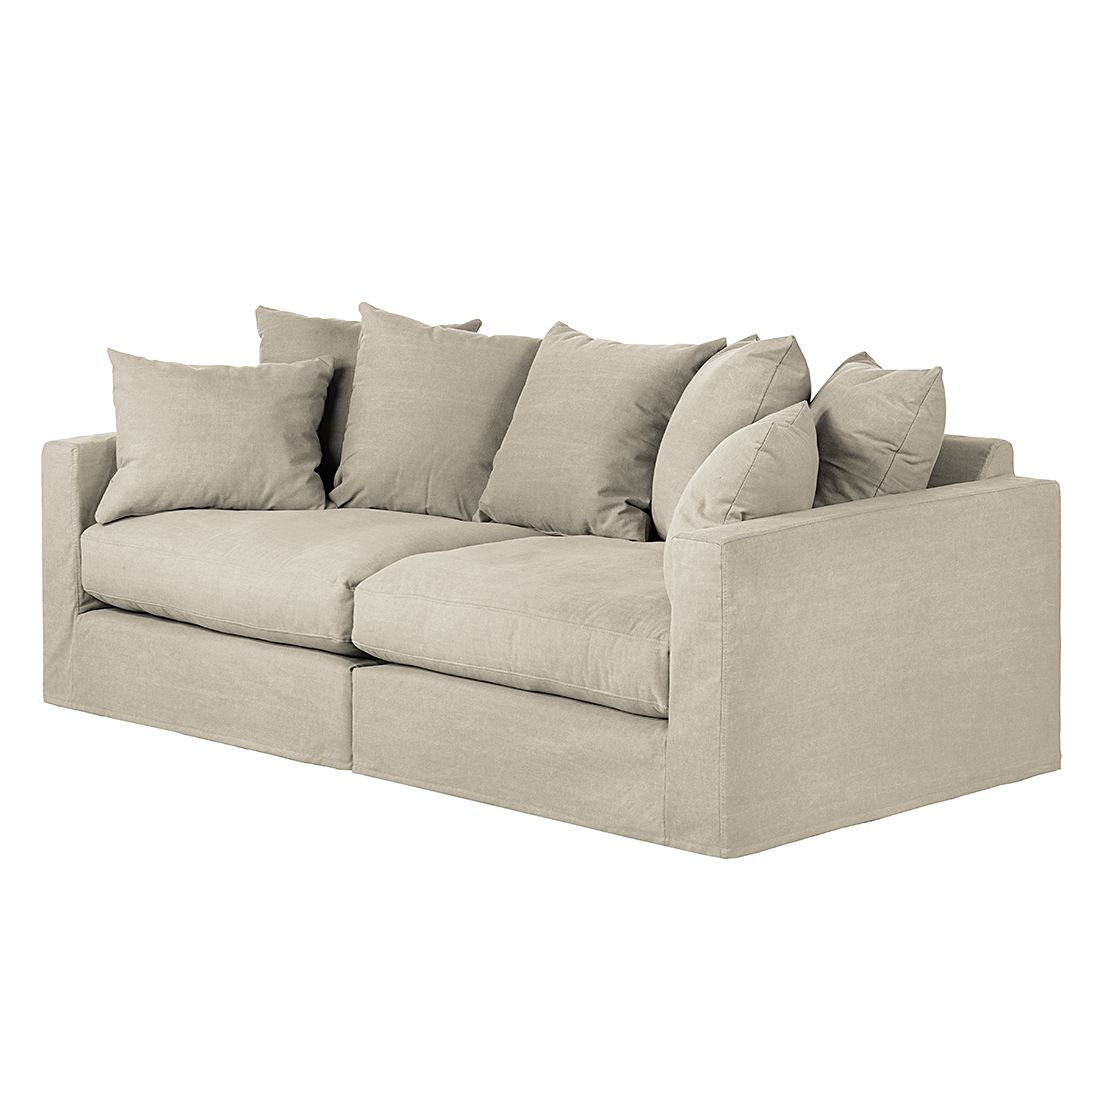 sofa ashton 3 sitzer baumwollstoff beige maison belfort online kaufen. Black Bedroom Furniture Sets. Home Design Ideas